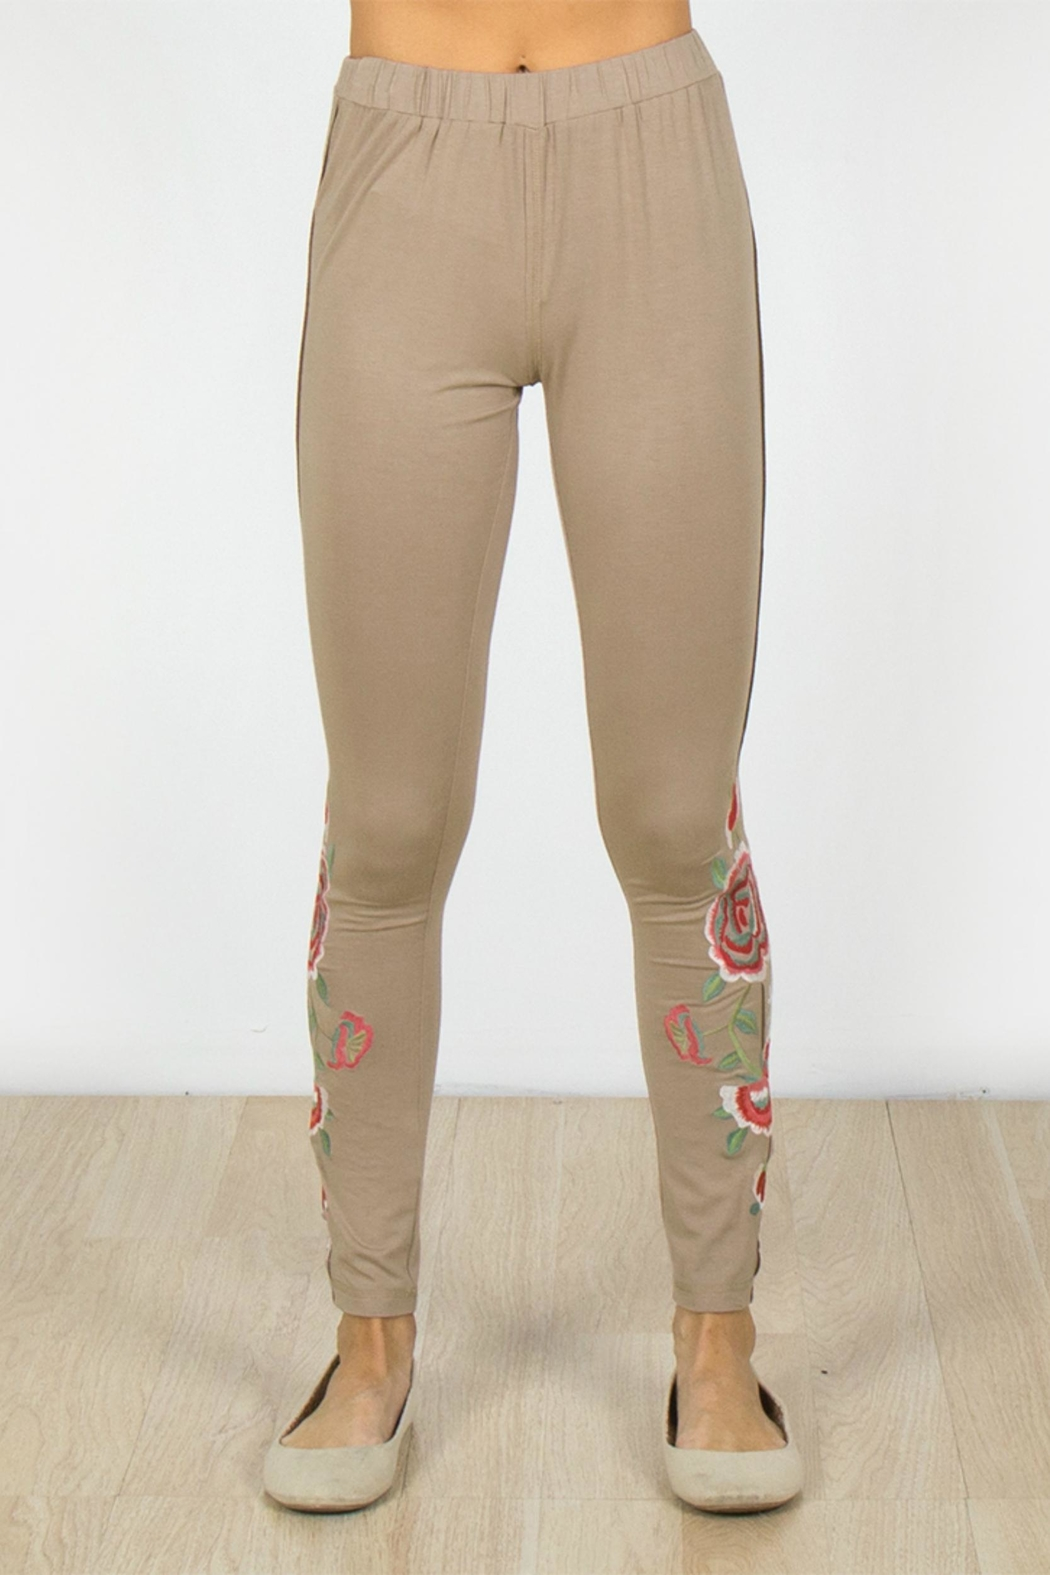 Mur Monoreno Embroidered Beauty Leggings - Main Image